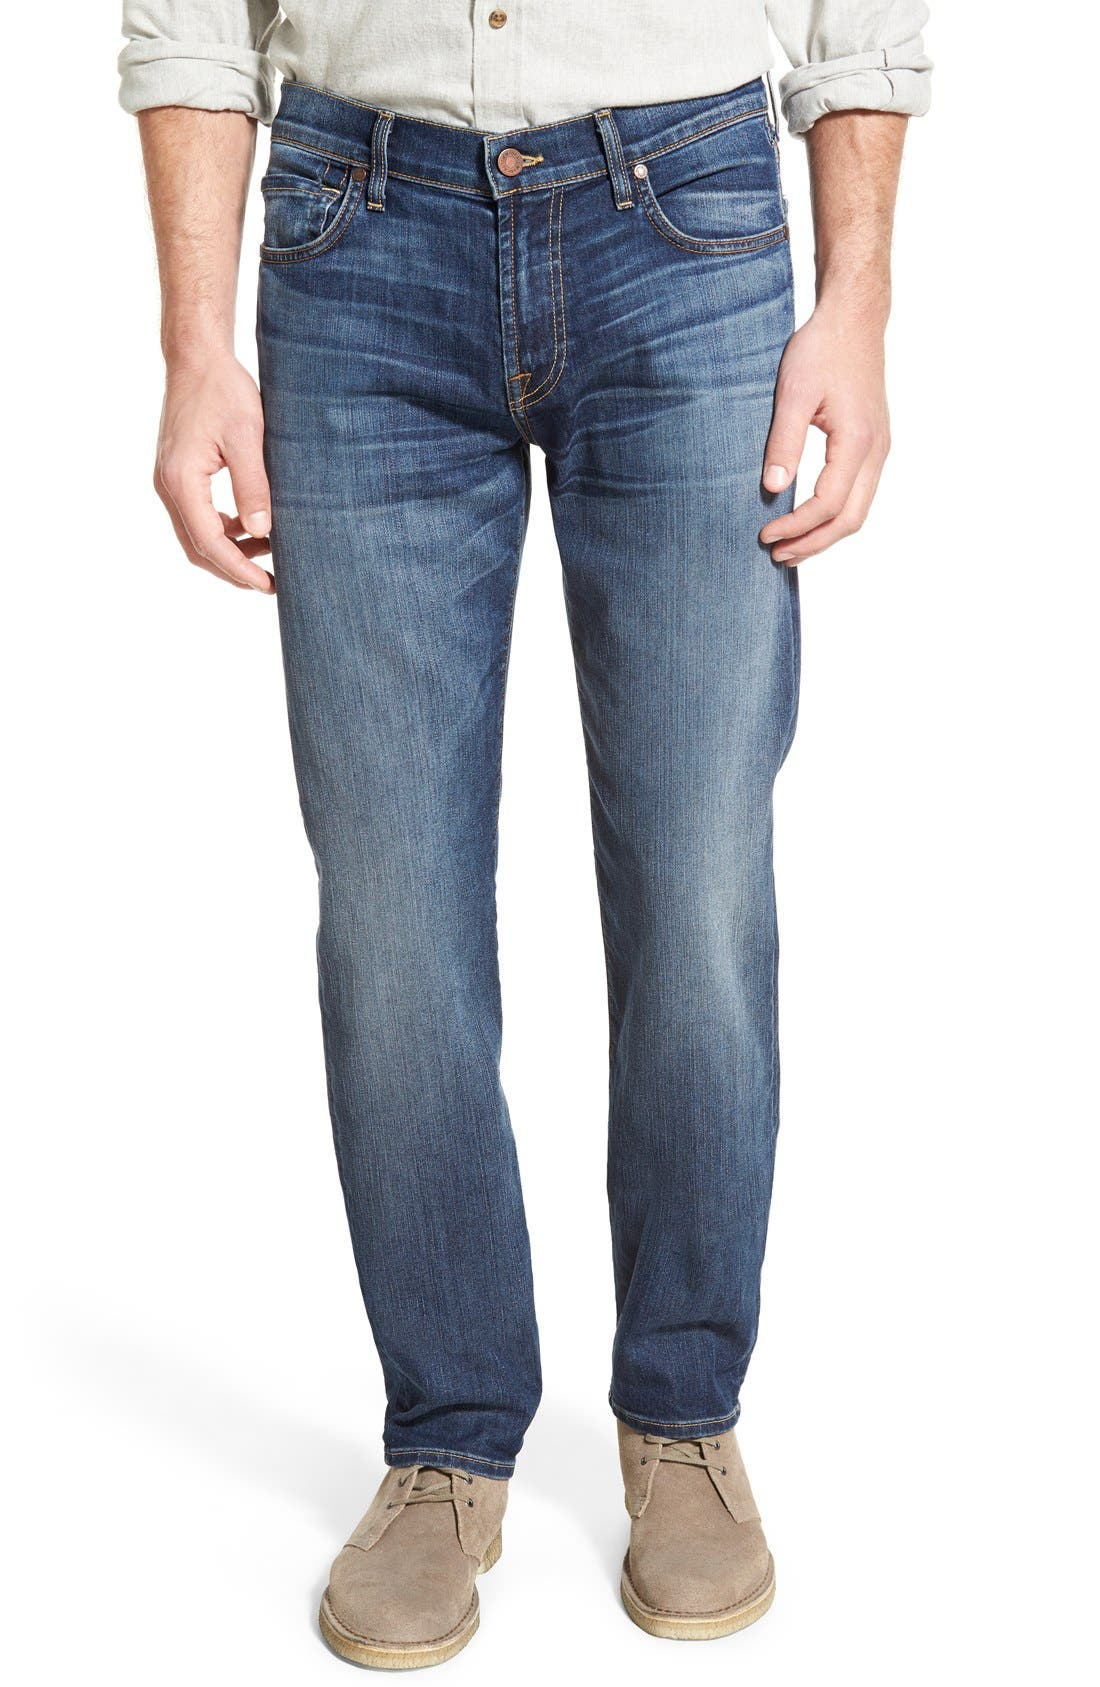 'Slimmy - Luxe Performance' Slim Fit Jeans,                         Main,                         color, Air Weft Commotion